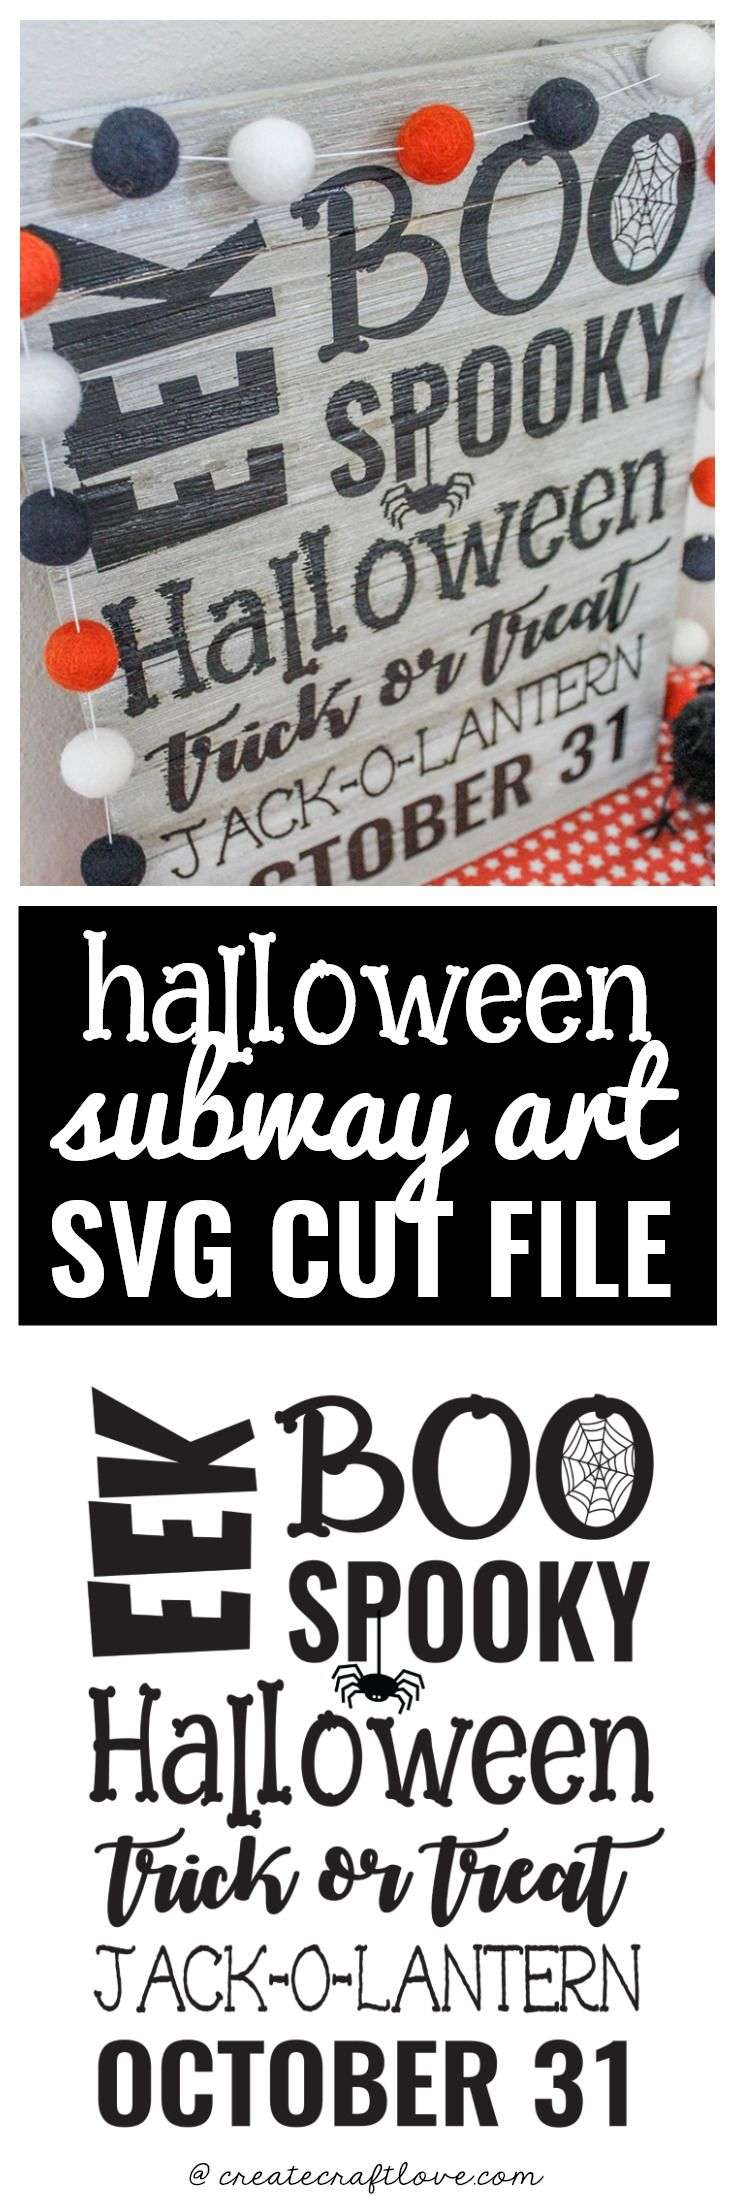 Grab this SVG file to create your own Halloween Subway Art!